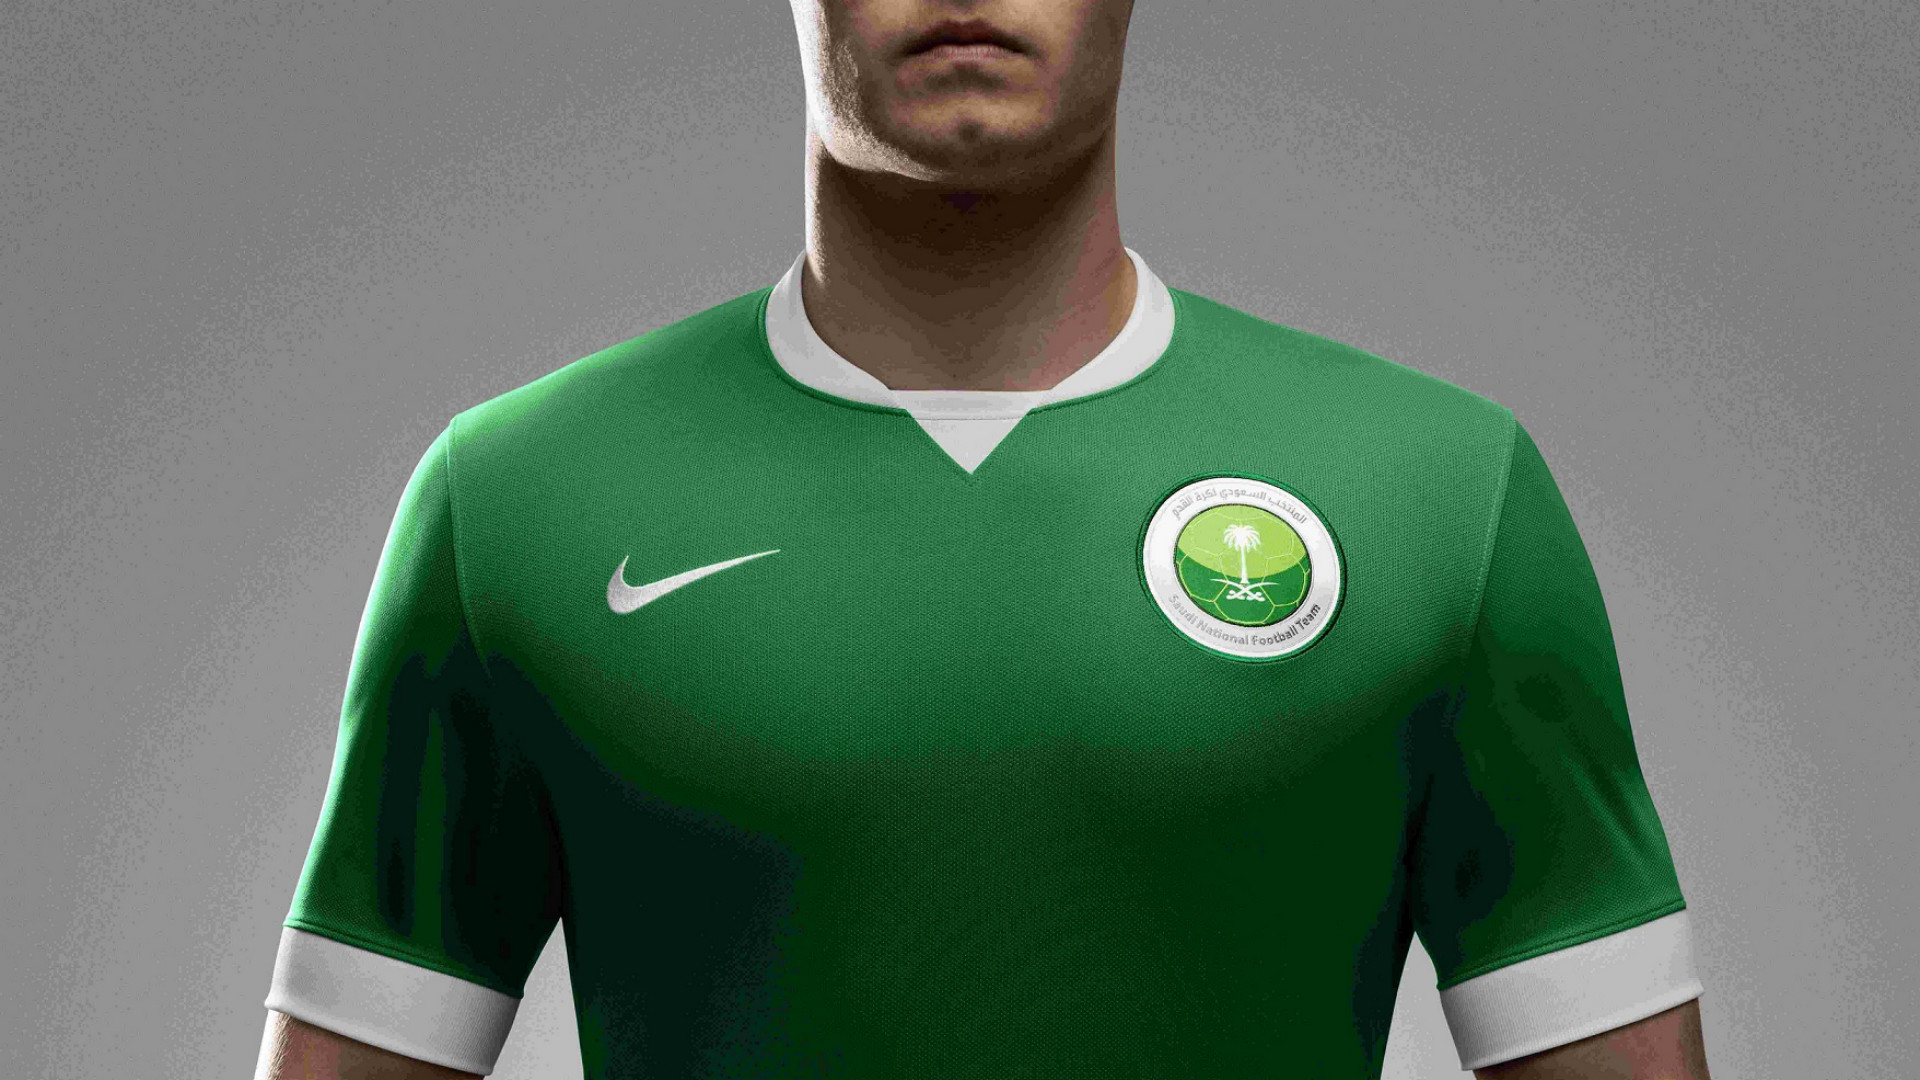 new concept b02b9 a34bb Saudi Arabia unveil new kits for Gulf Cup of Nations | Goal.com